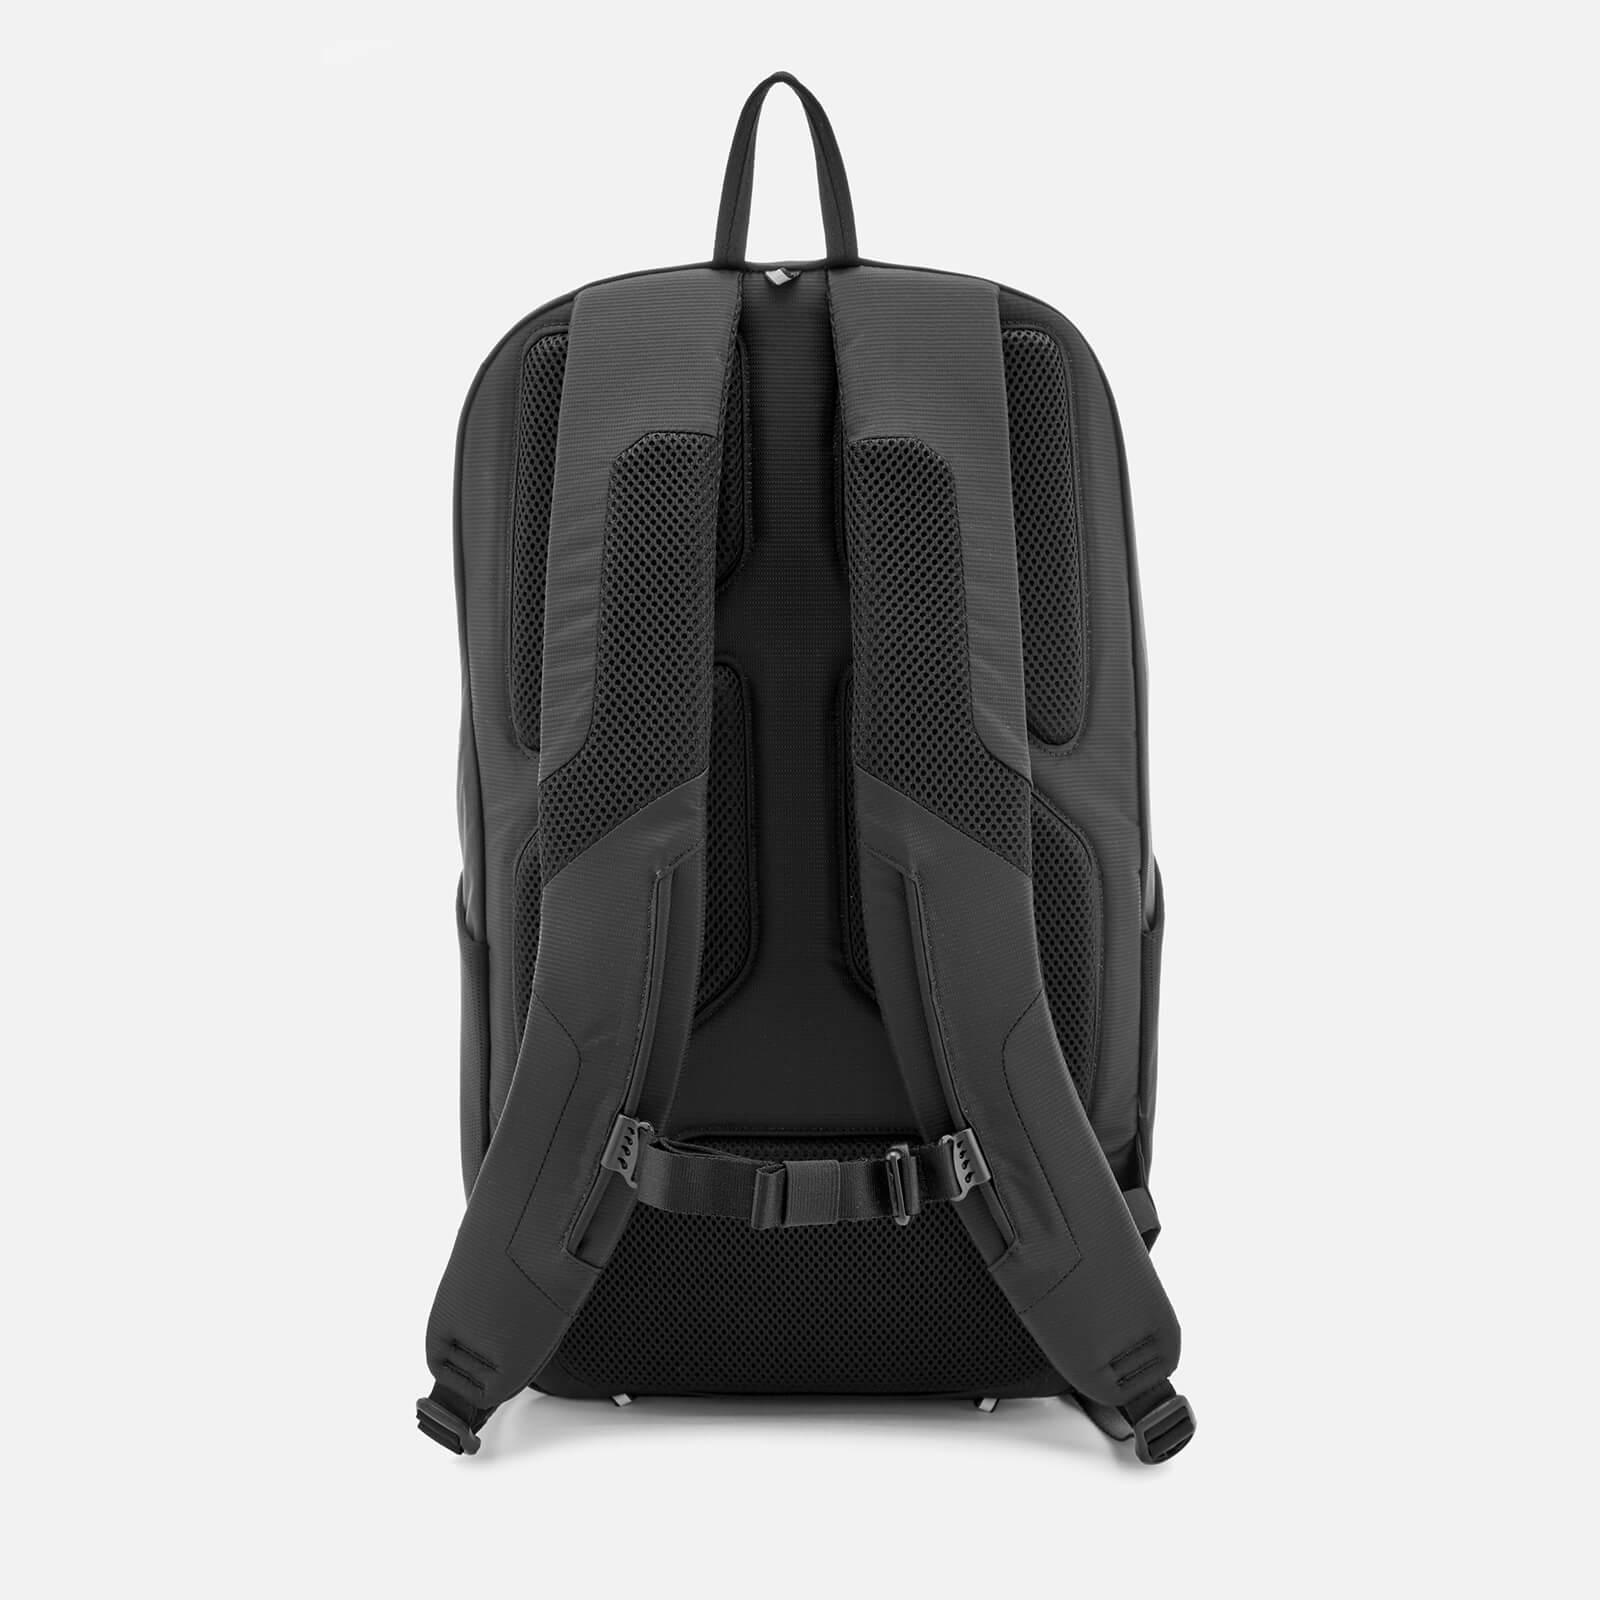 4016dff5e53 Herschel Supply Co. - Black Trail Mammoth Large Backpack for Men - Lyst.  View fullscreen